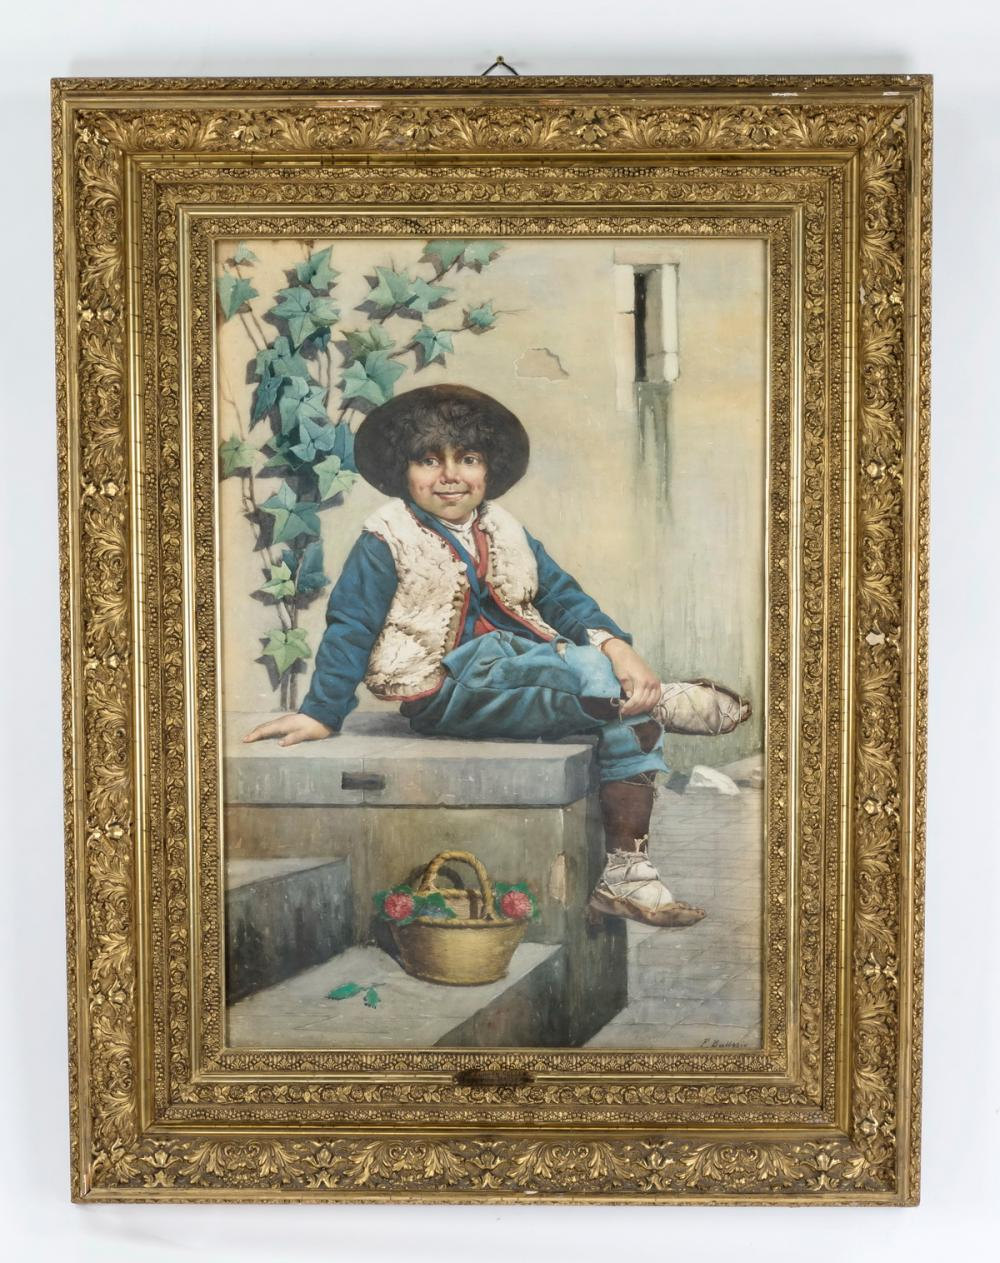 Frederico Ballesio W/c 'The Flower Seller,' signed